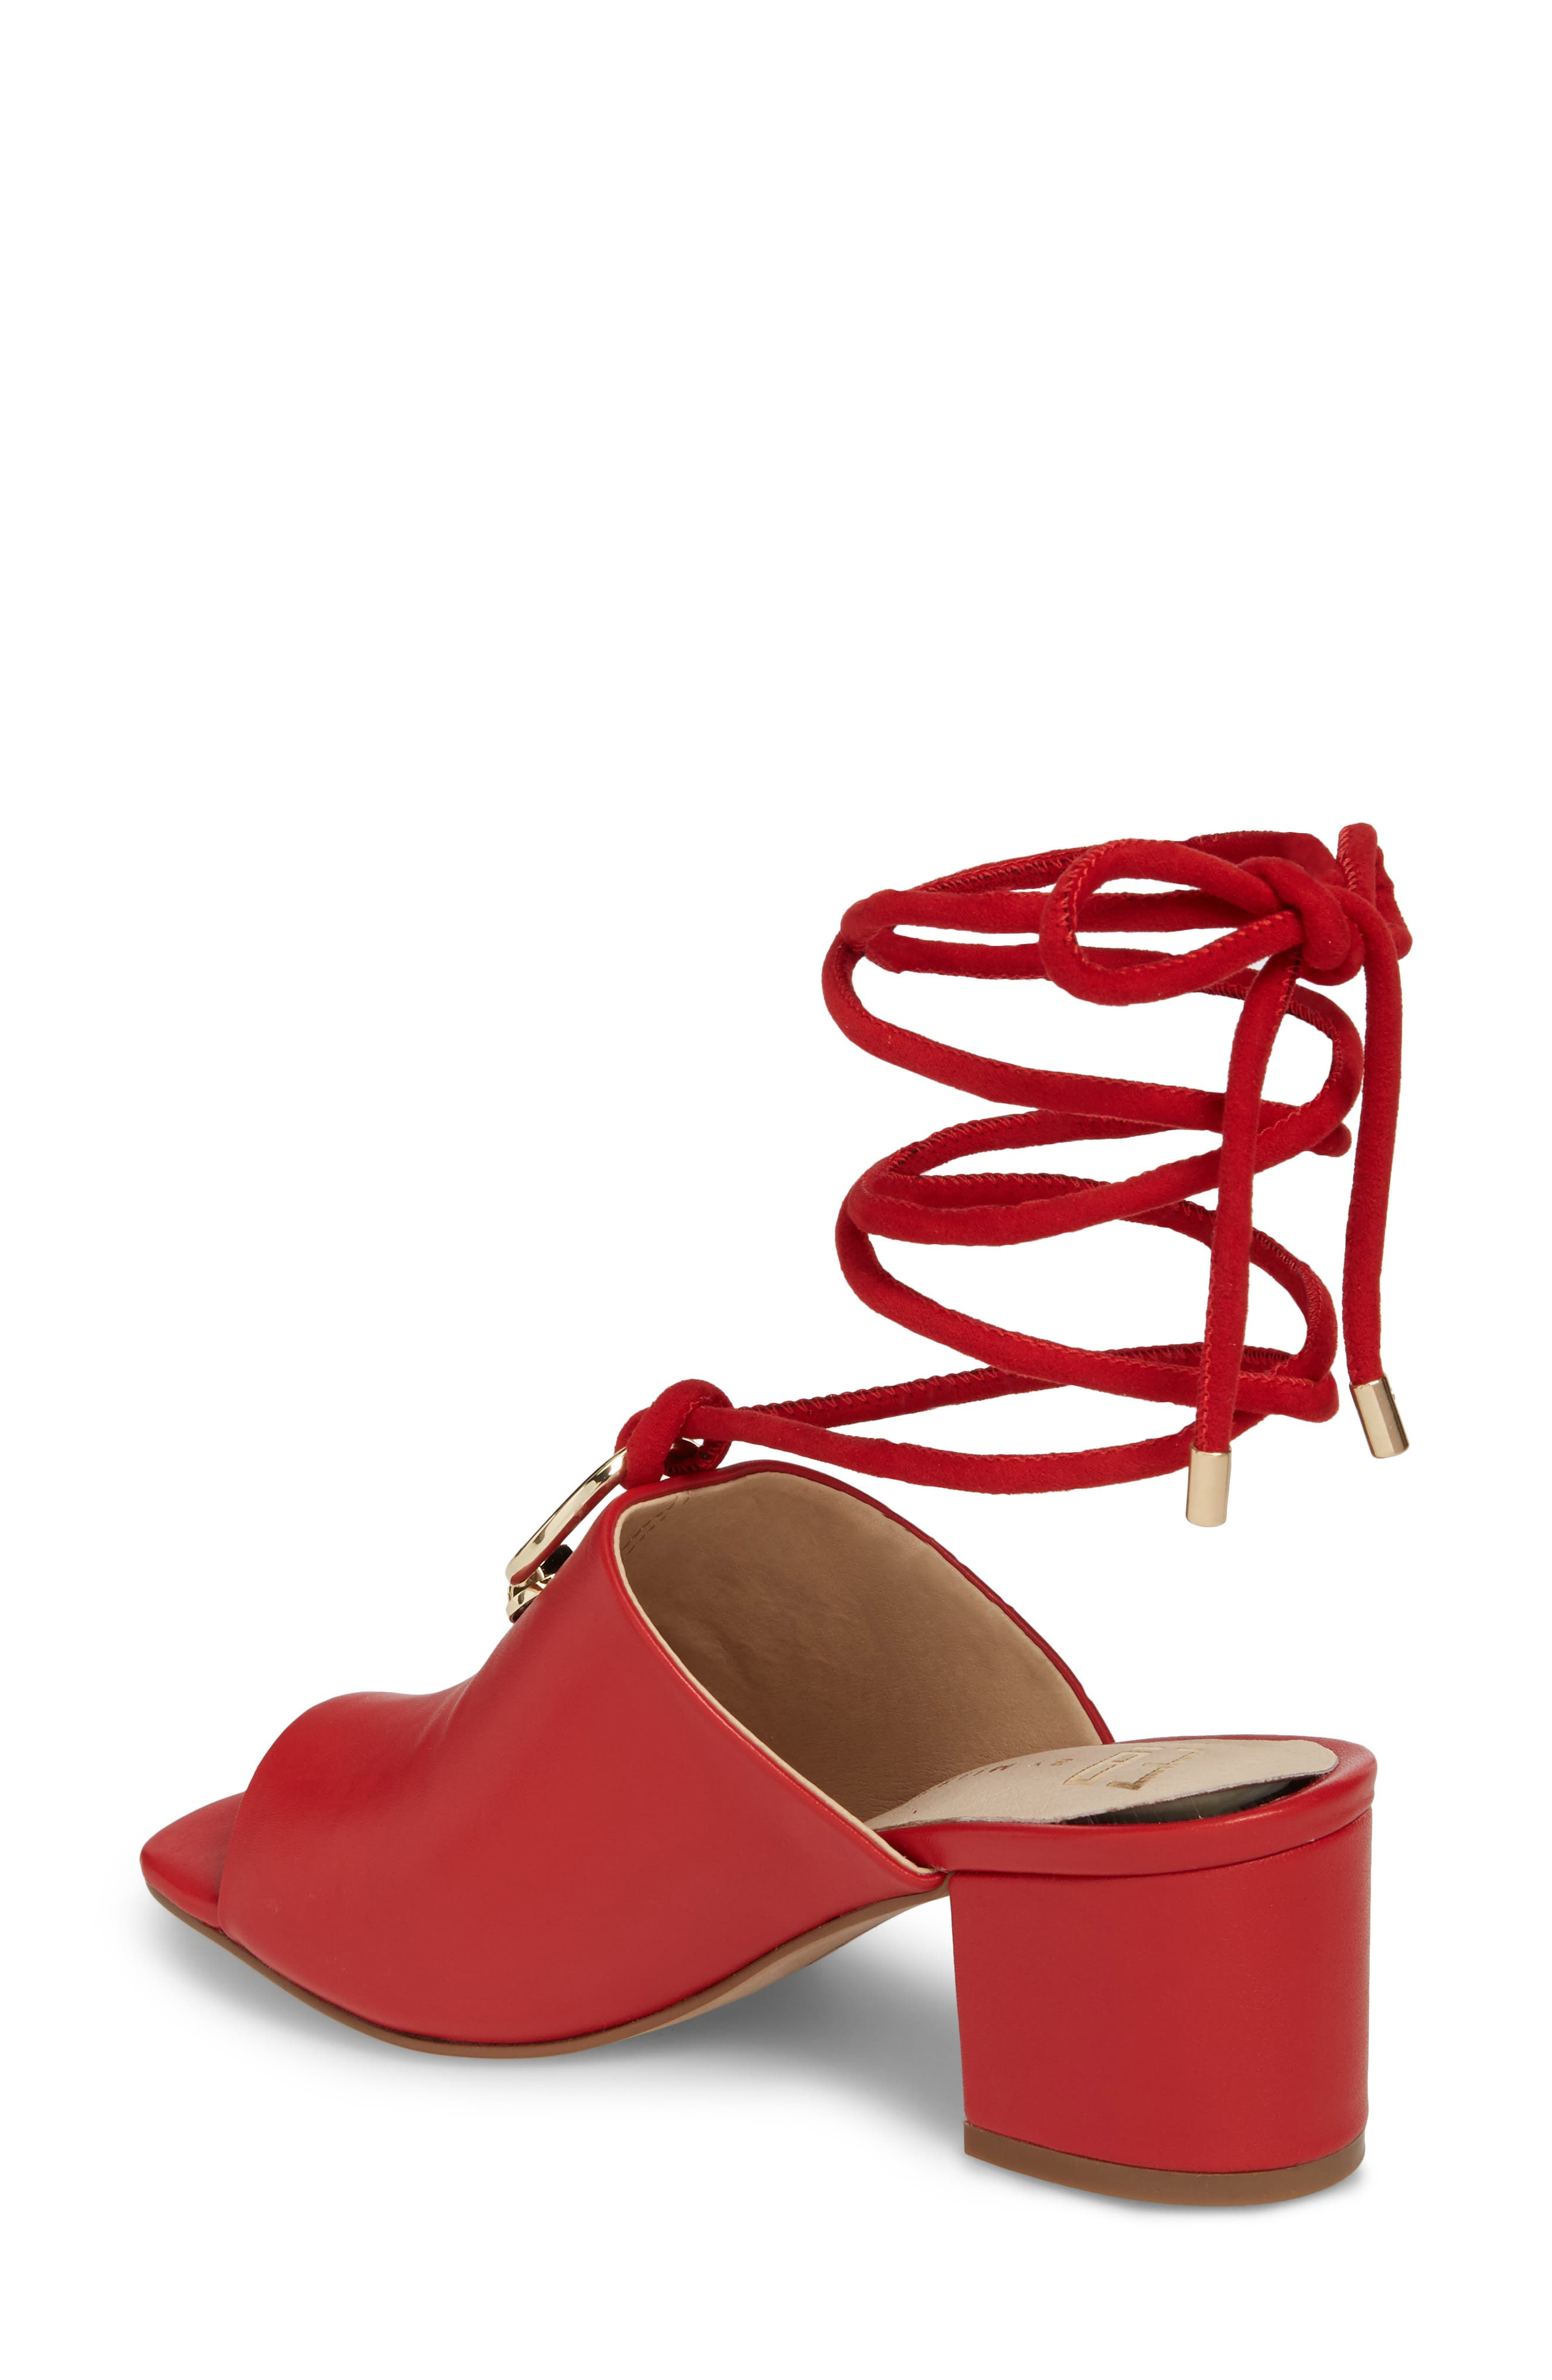 Mason Ankle Tie Sandal,                             Alternate thumbnail 2, color,                             Red Leather